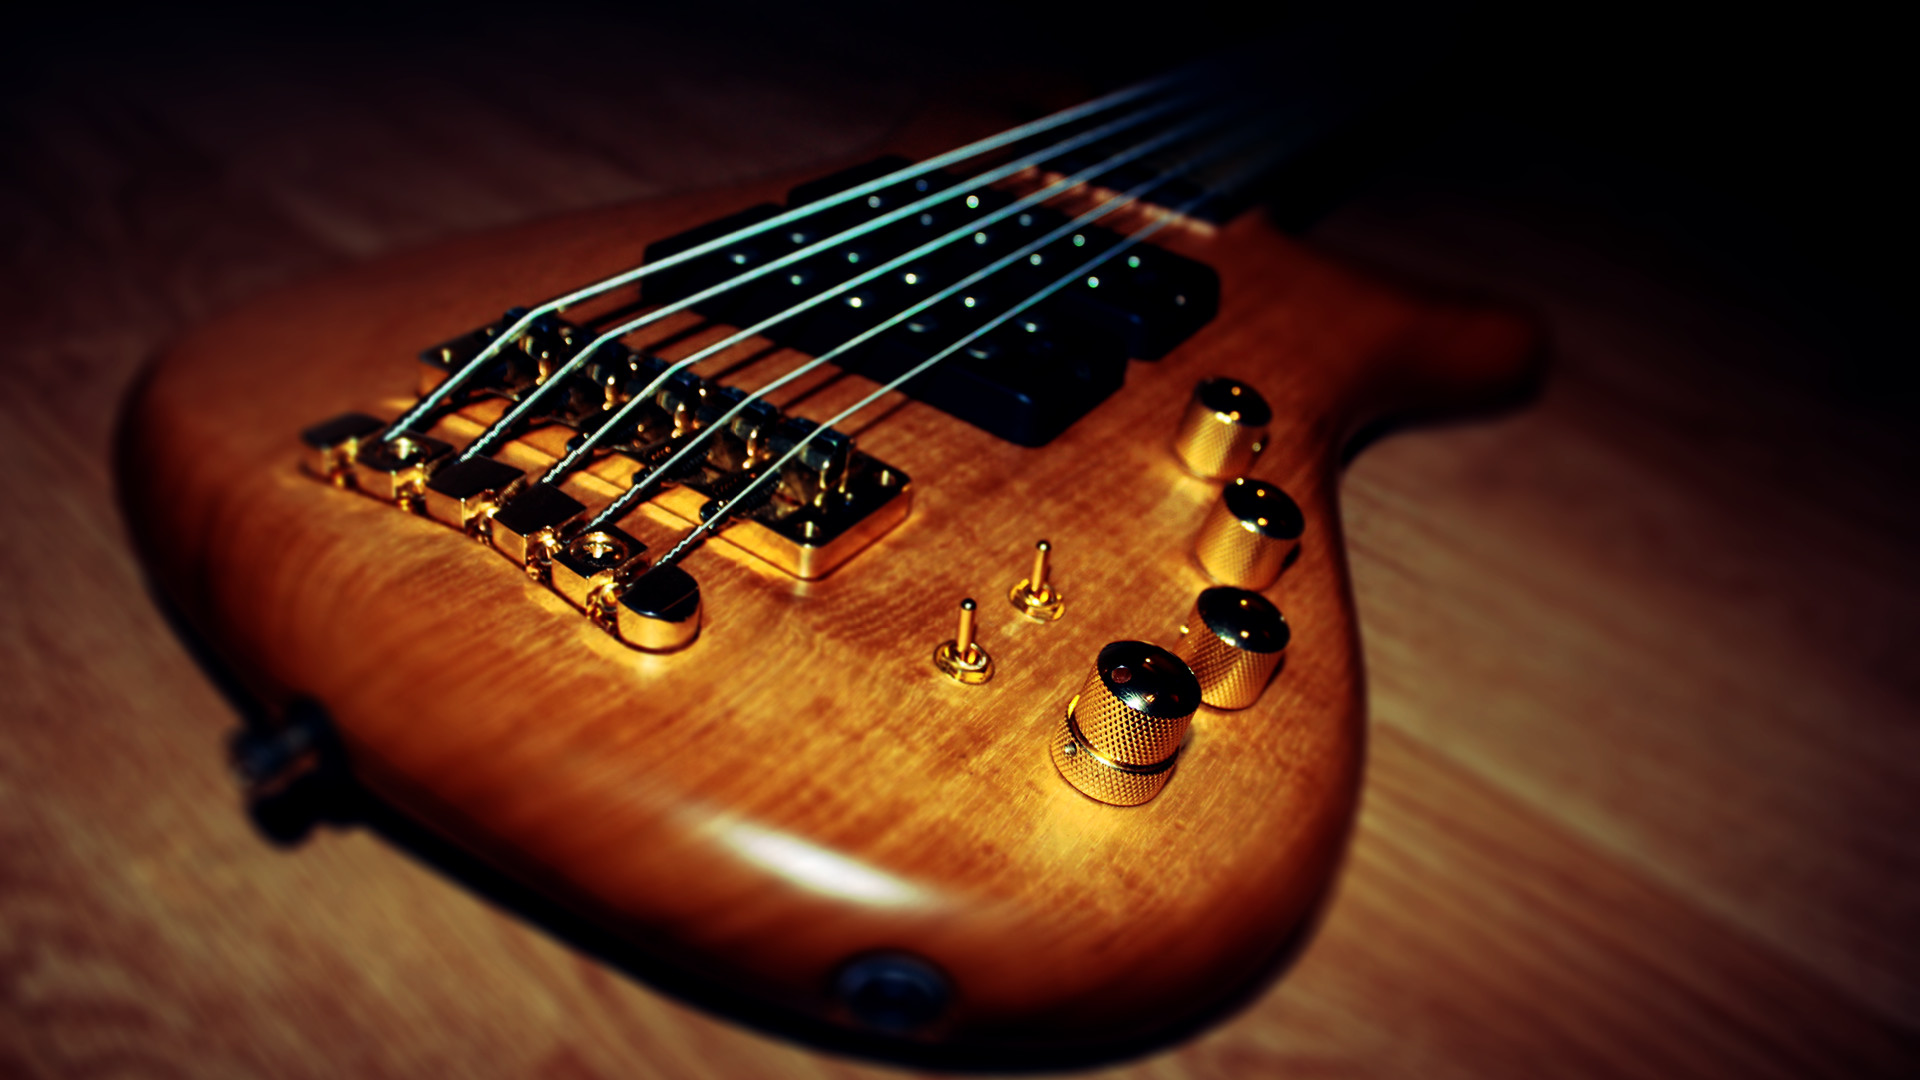 Hd Bass Guitar Wallpaper: 5 String Bass Guitar Wallpaper ·①